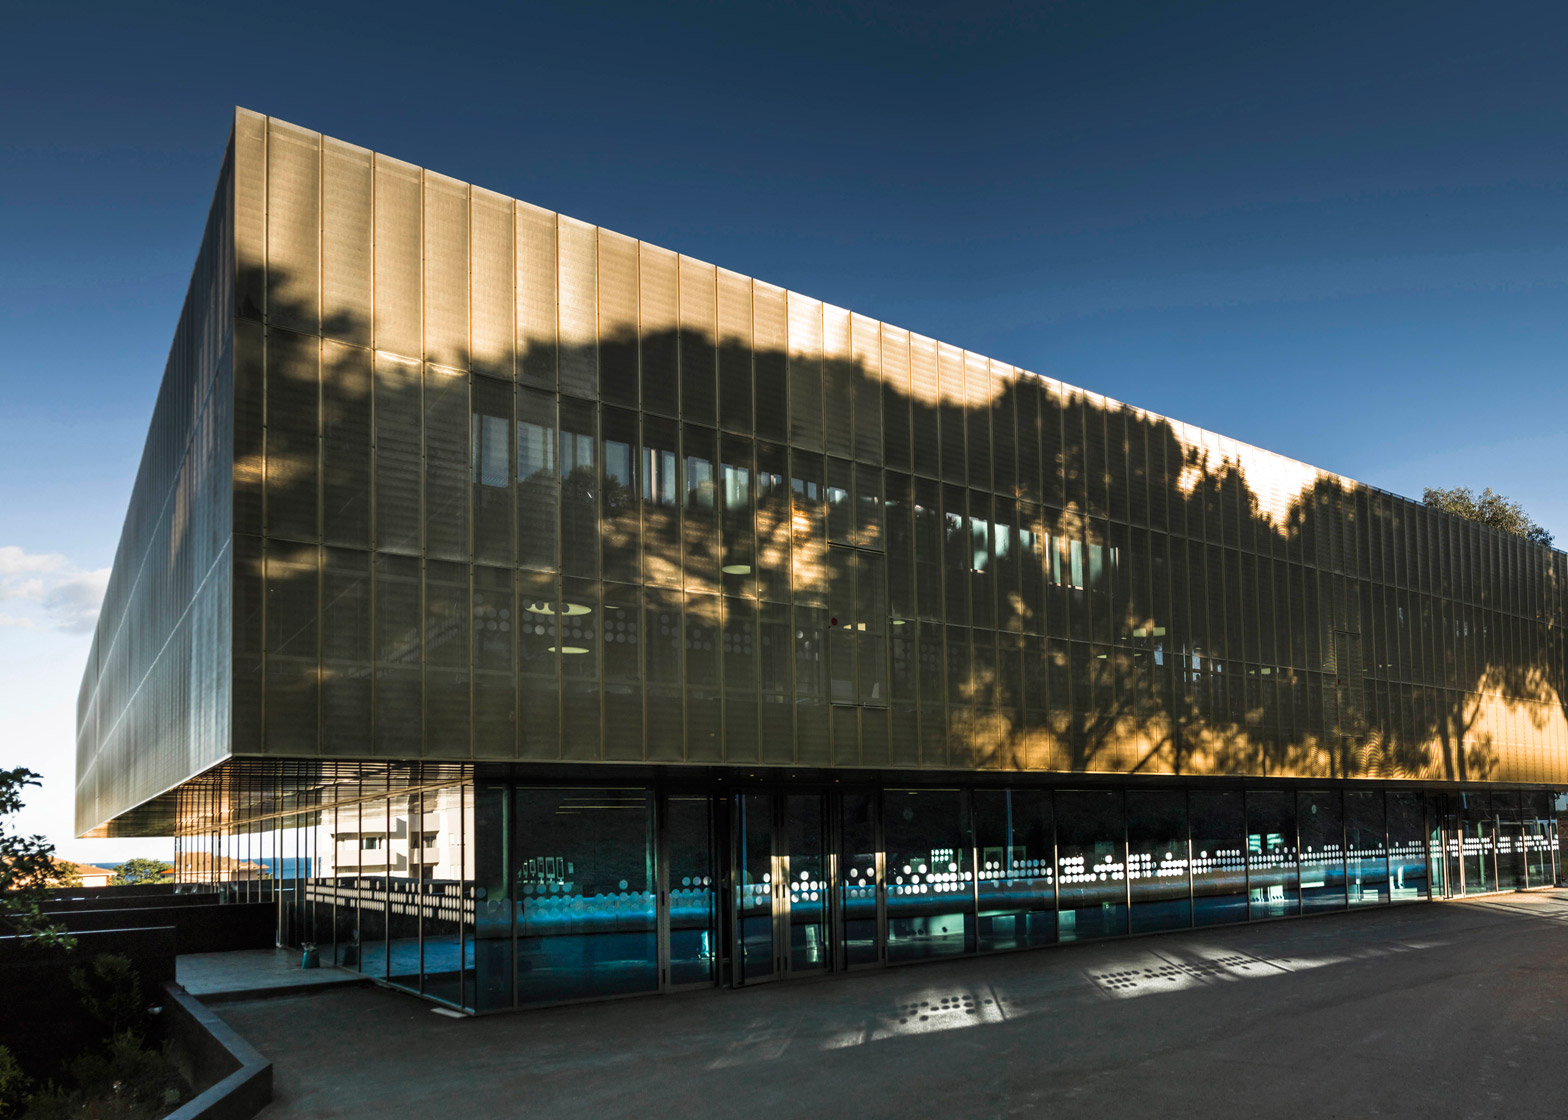 The Alb'Oru cultural centre in Bastia by DDA Architectes